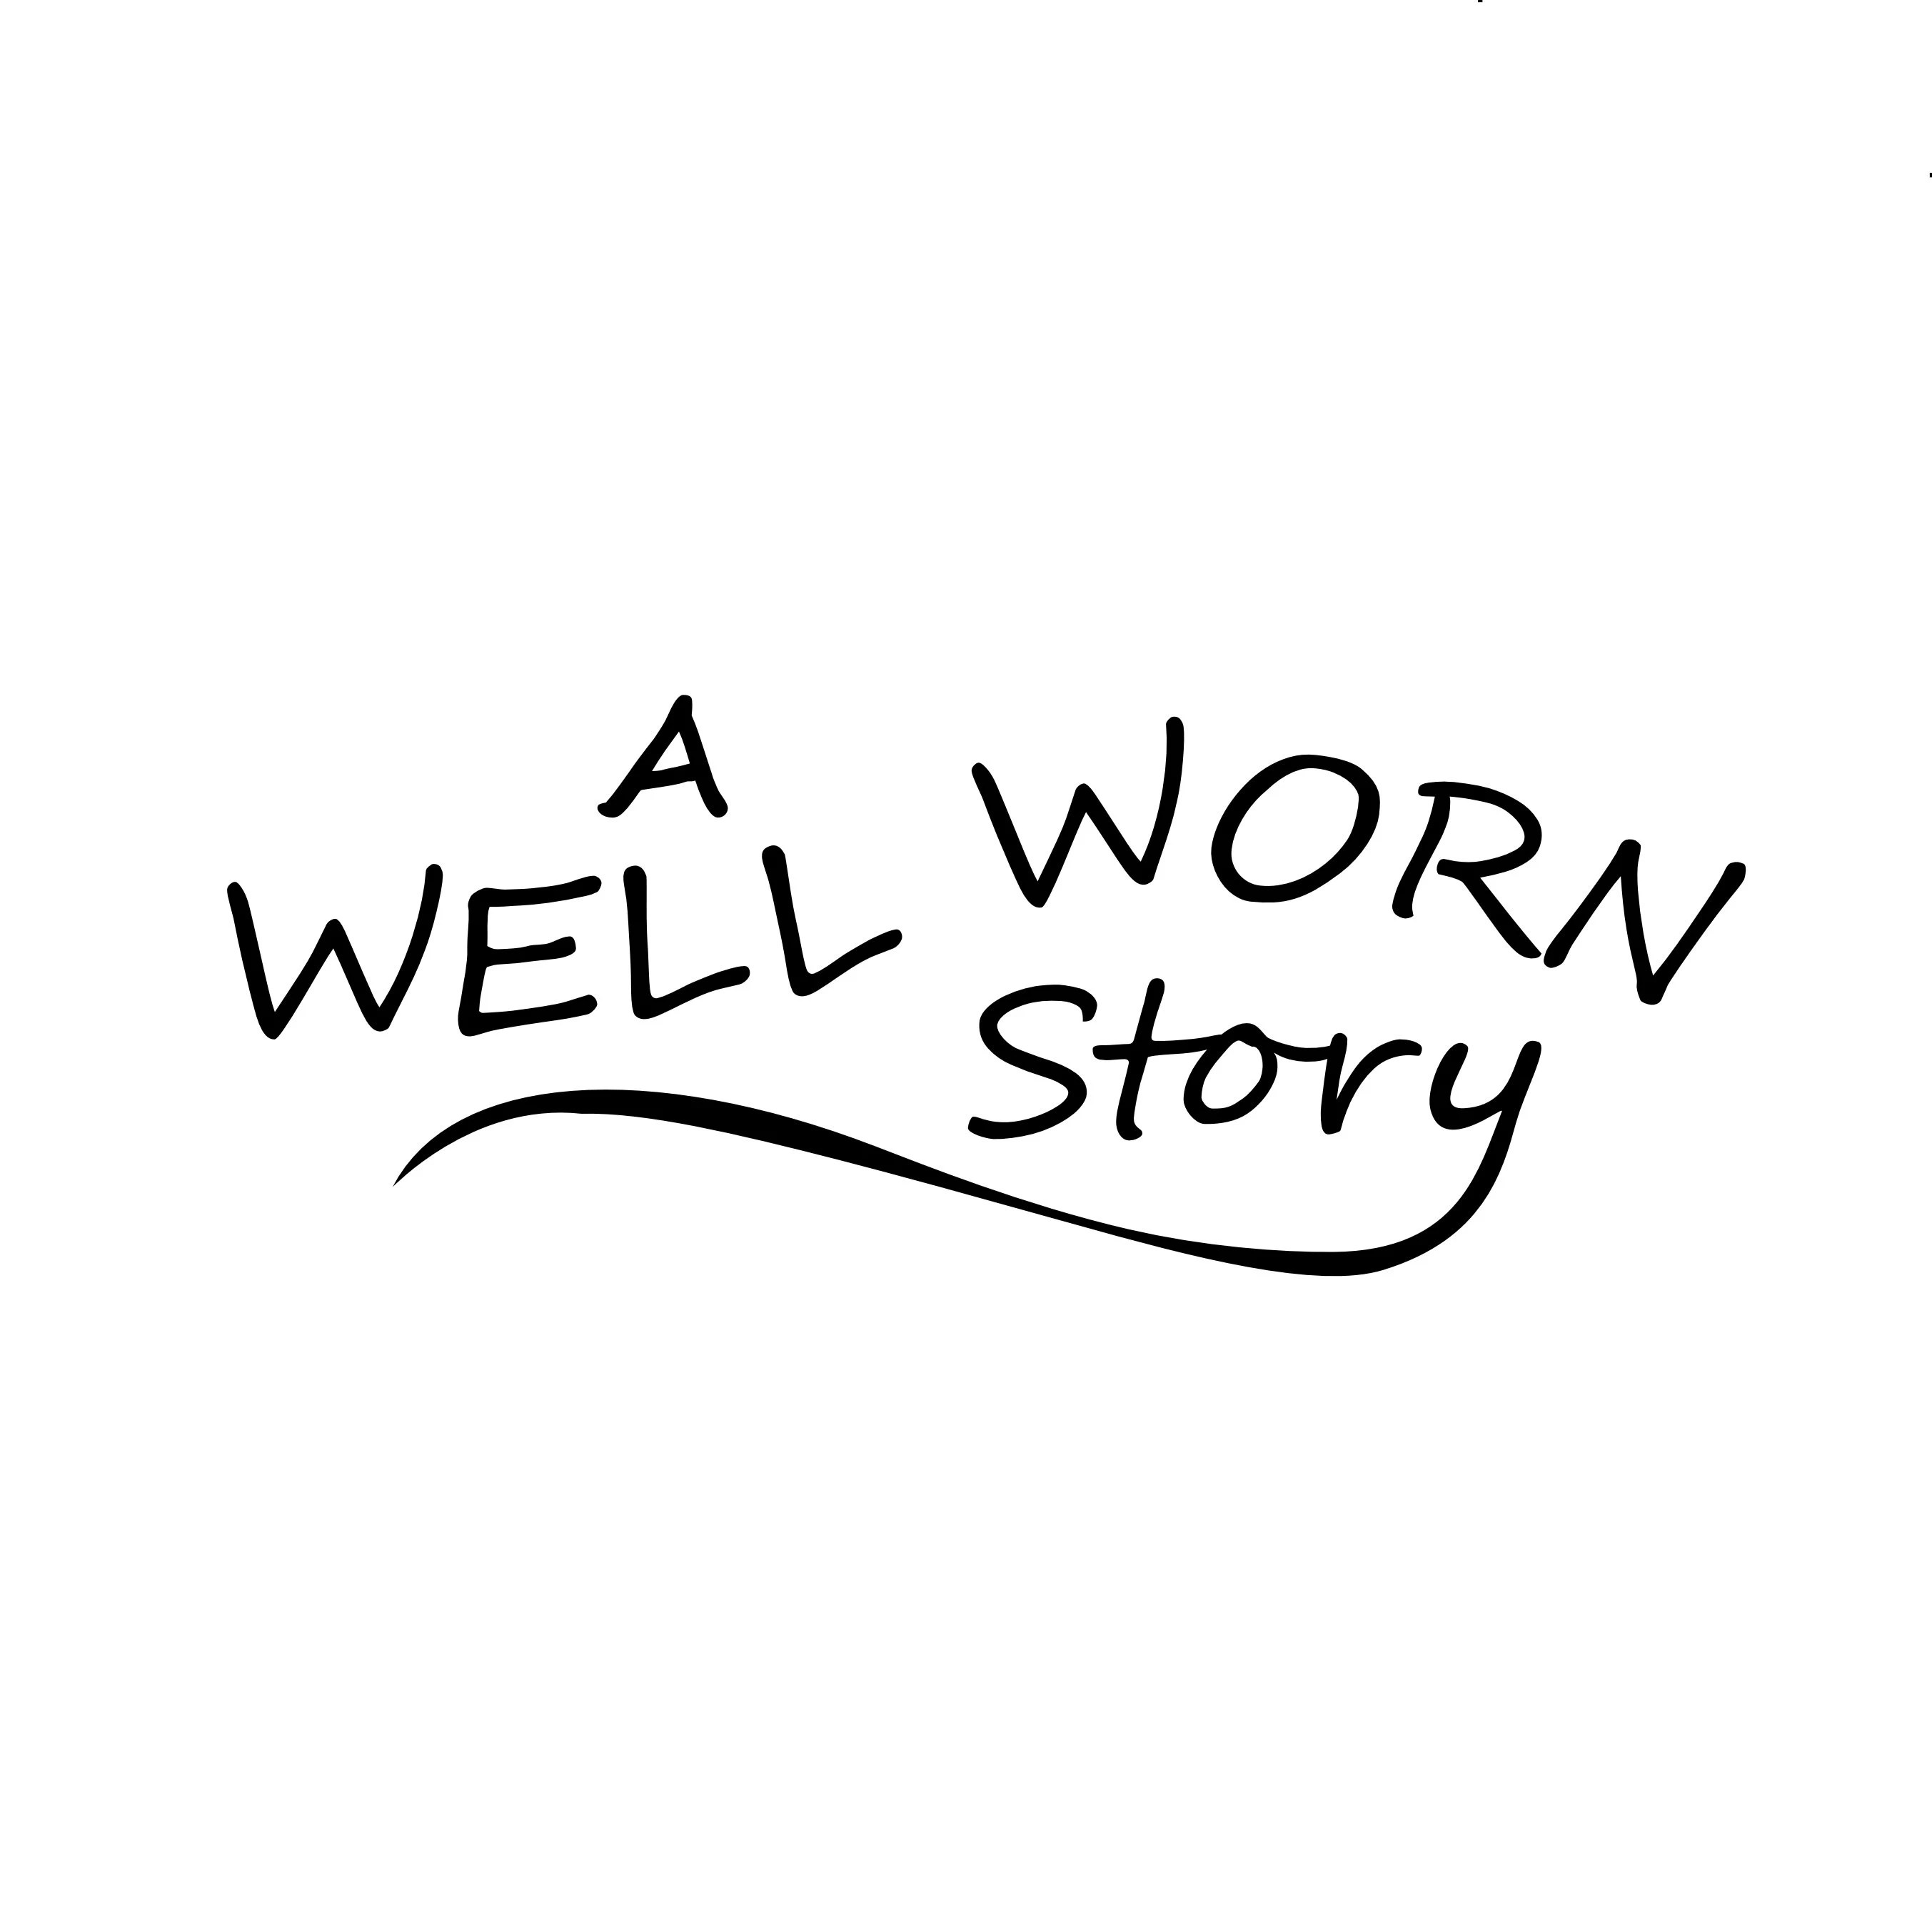 Handcrafted goods from storied materials by AWellWornStory